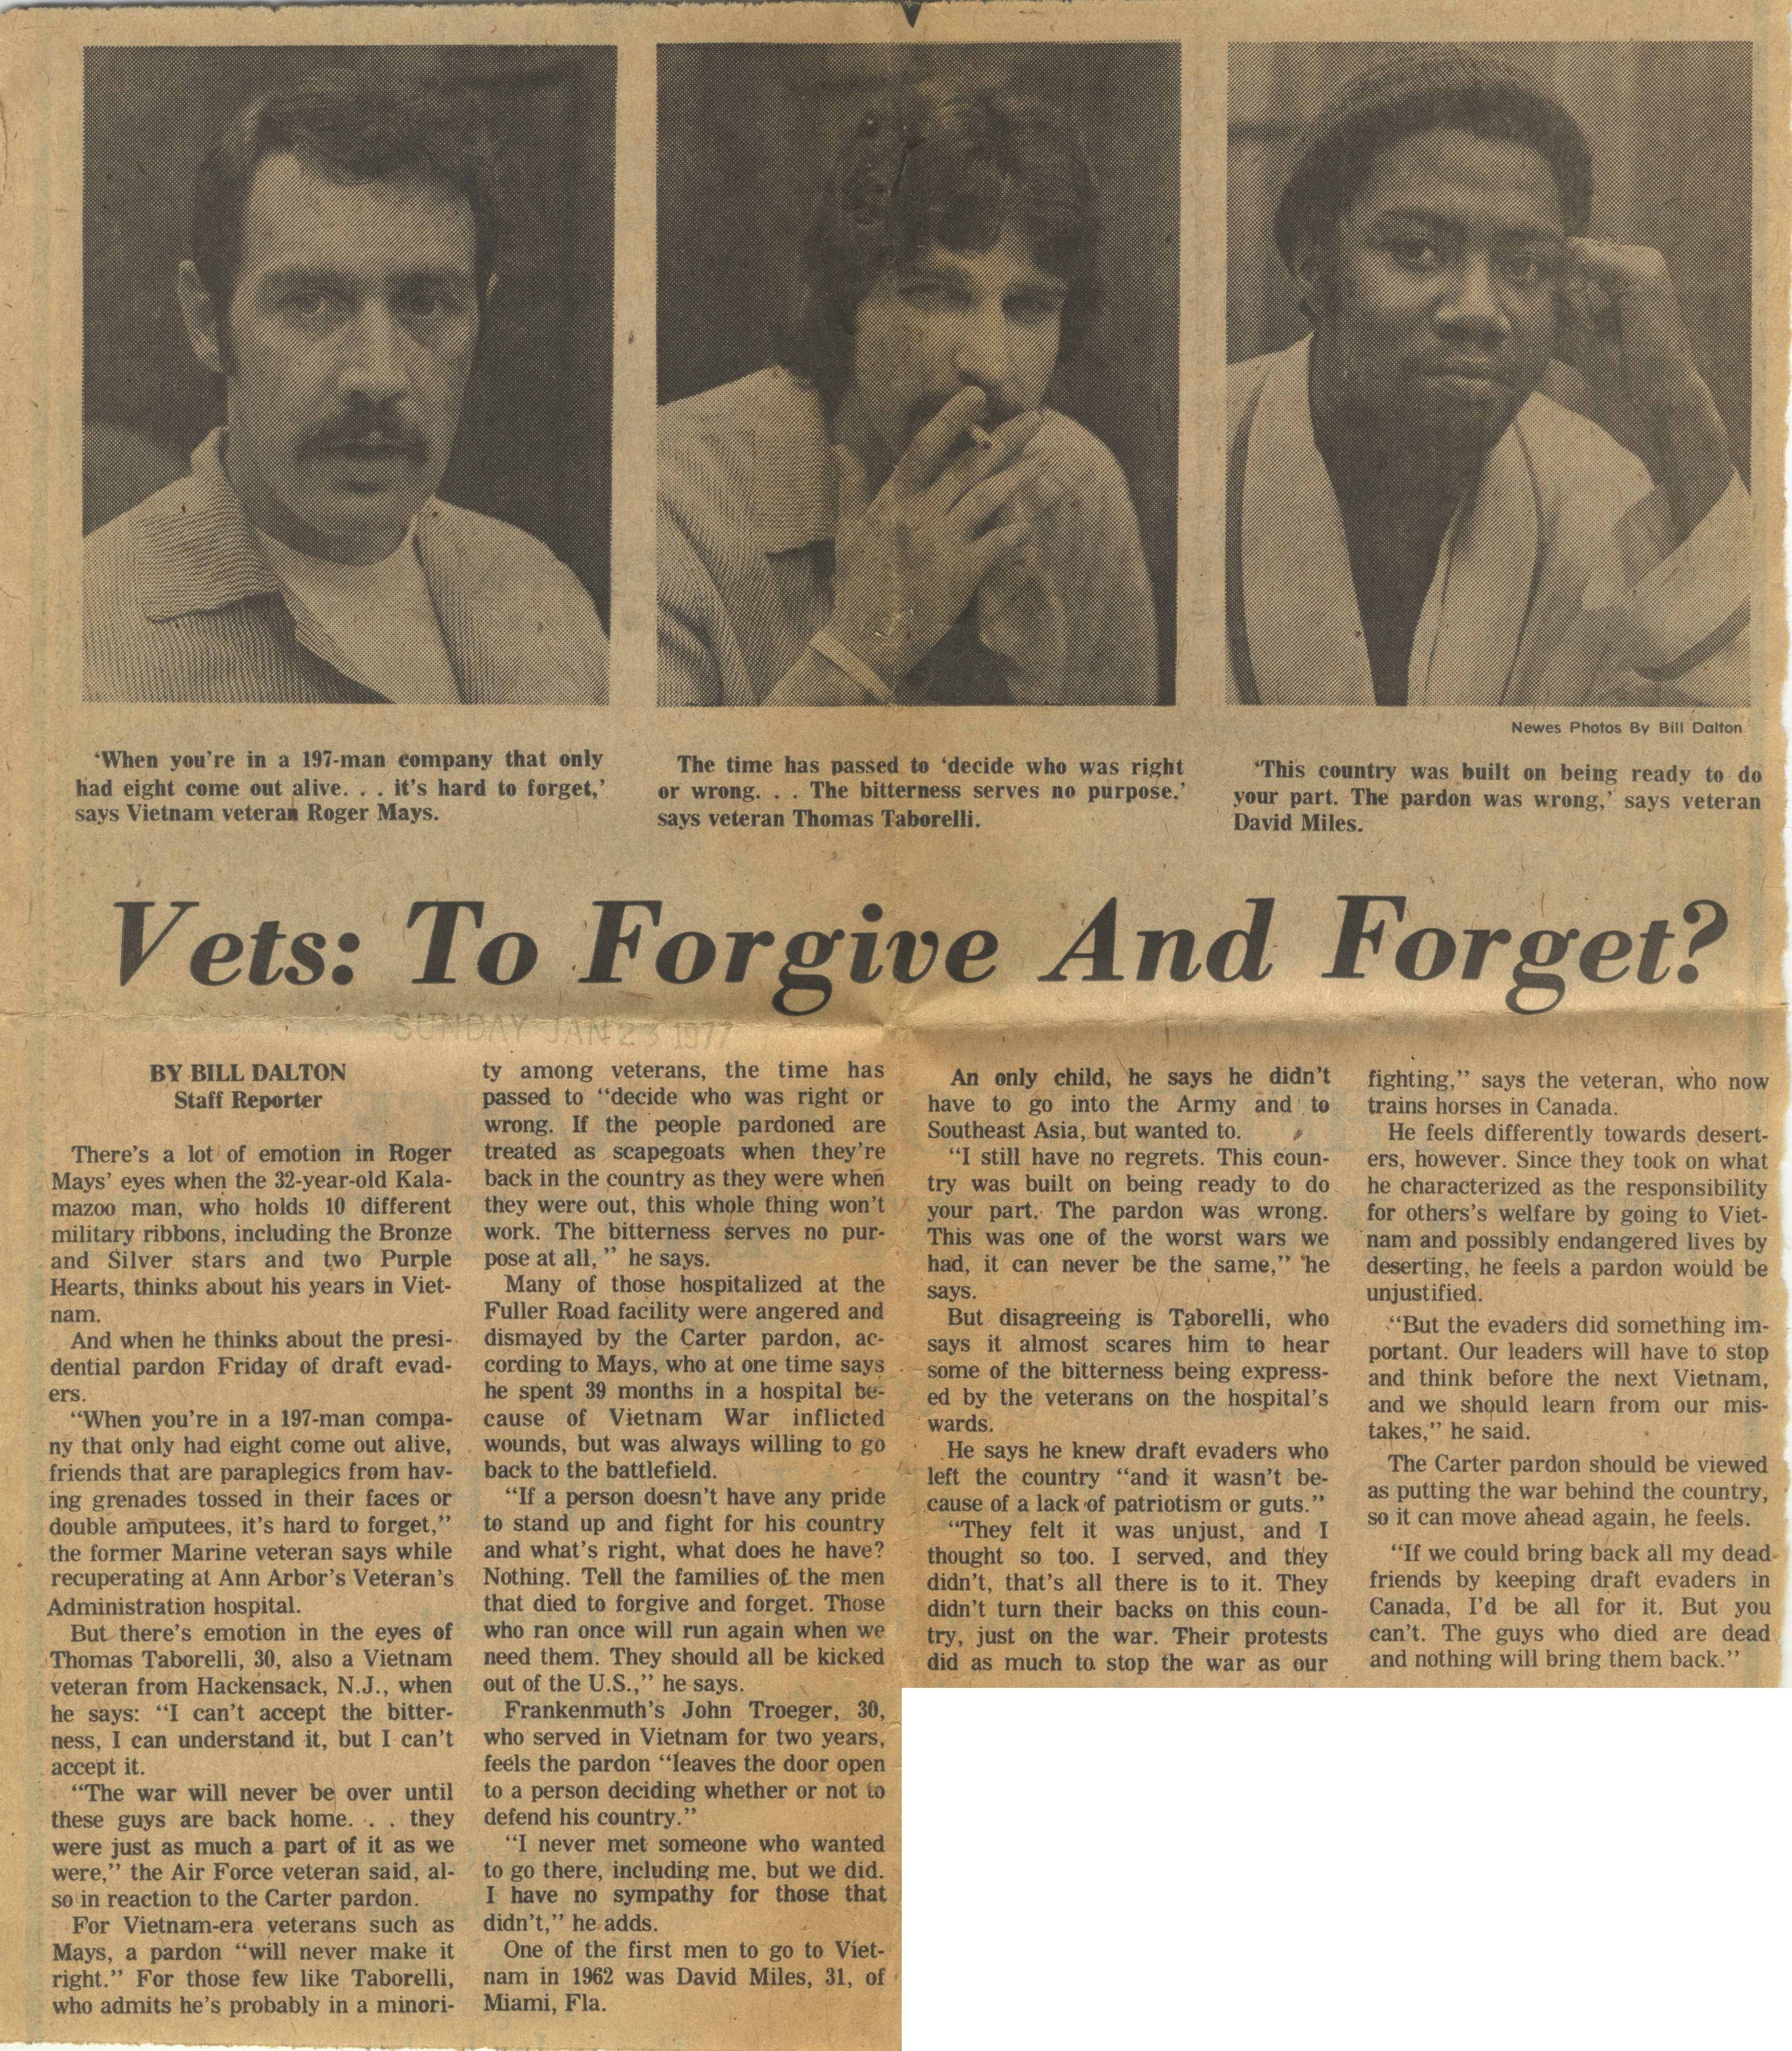 Vets: To Forgive And Forget? image